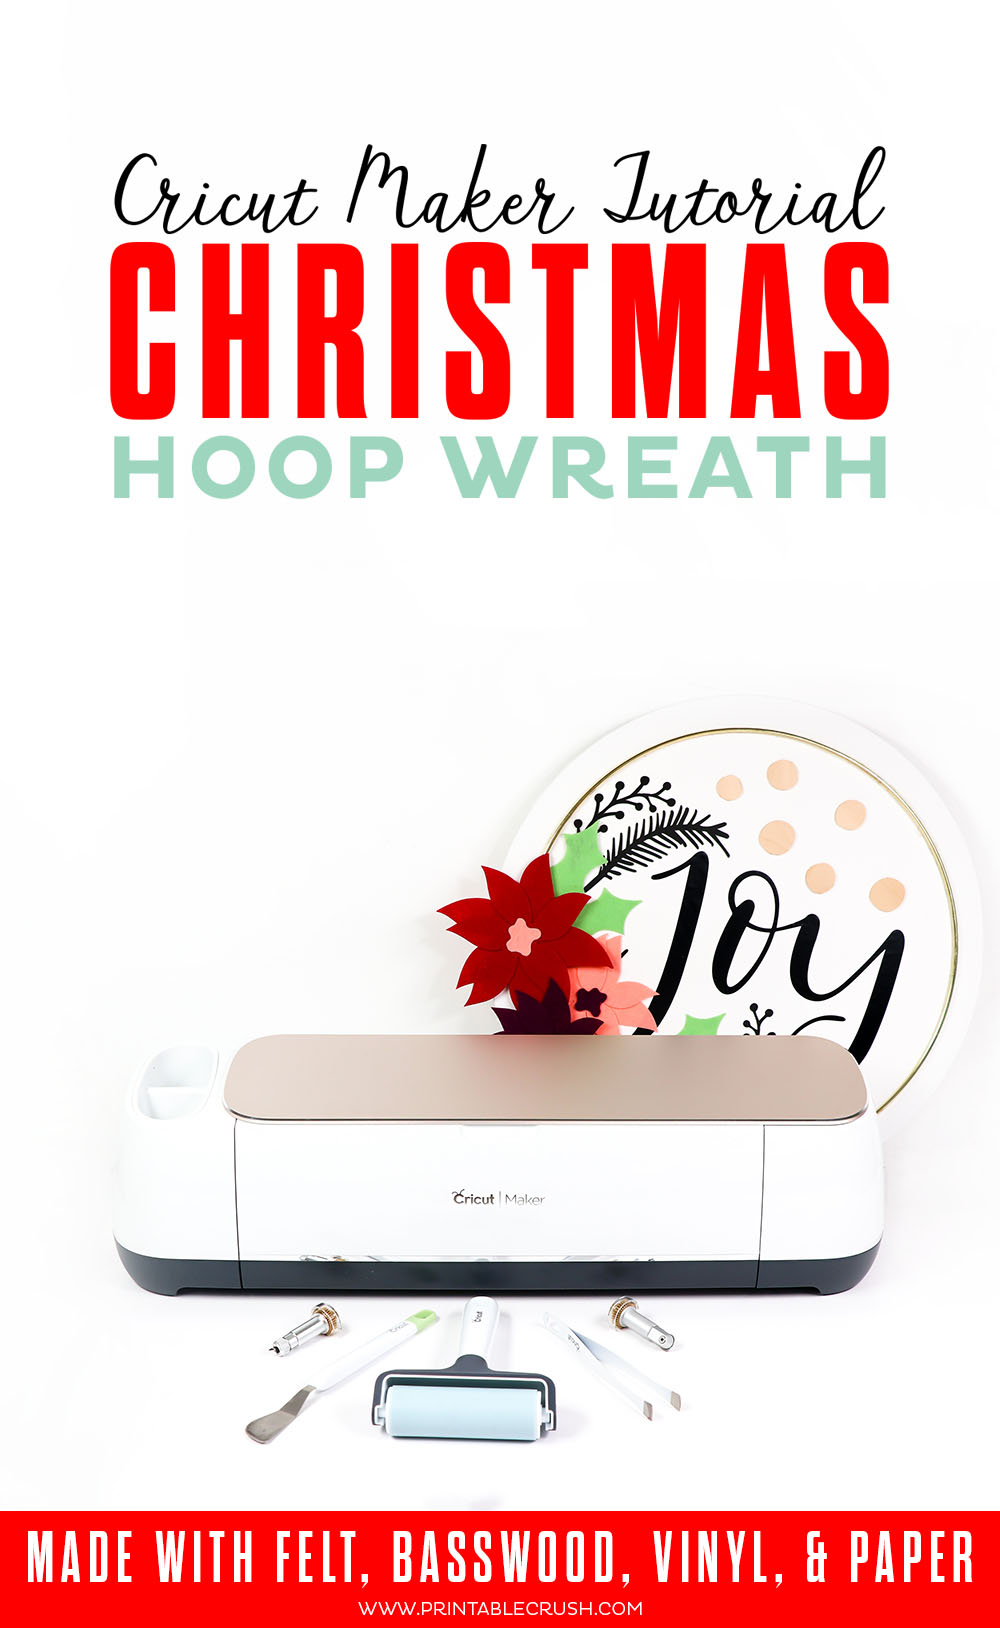 This Christmas Hoop Wreath is SO easy to make when you have a Cricut Maker! It can easily cut fabric, vinyl, paper, and even basswood for this beautiful project.